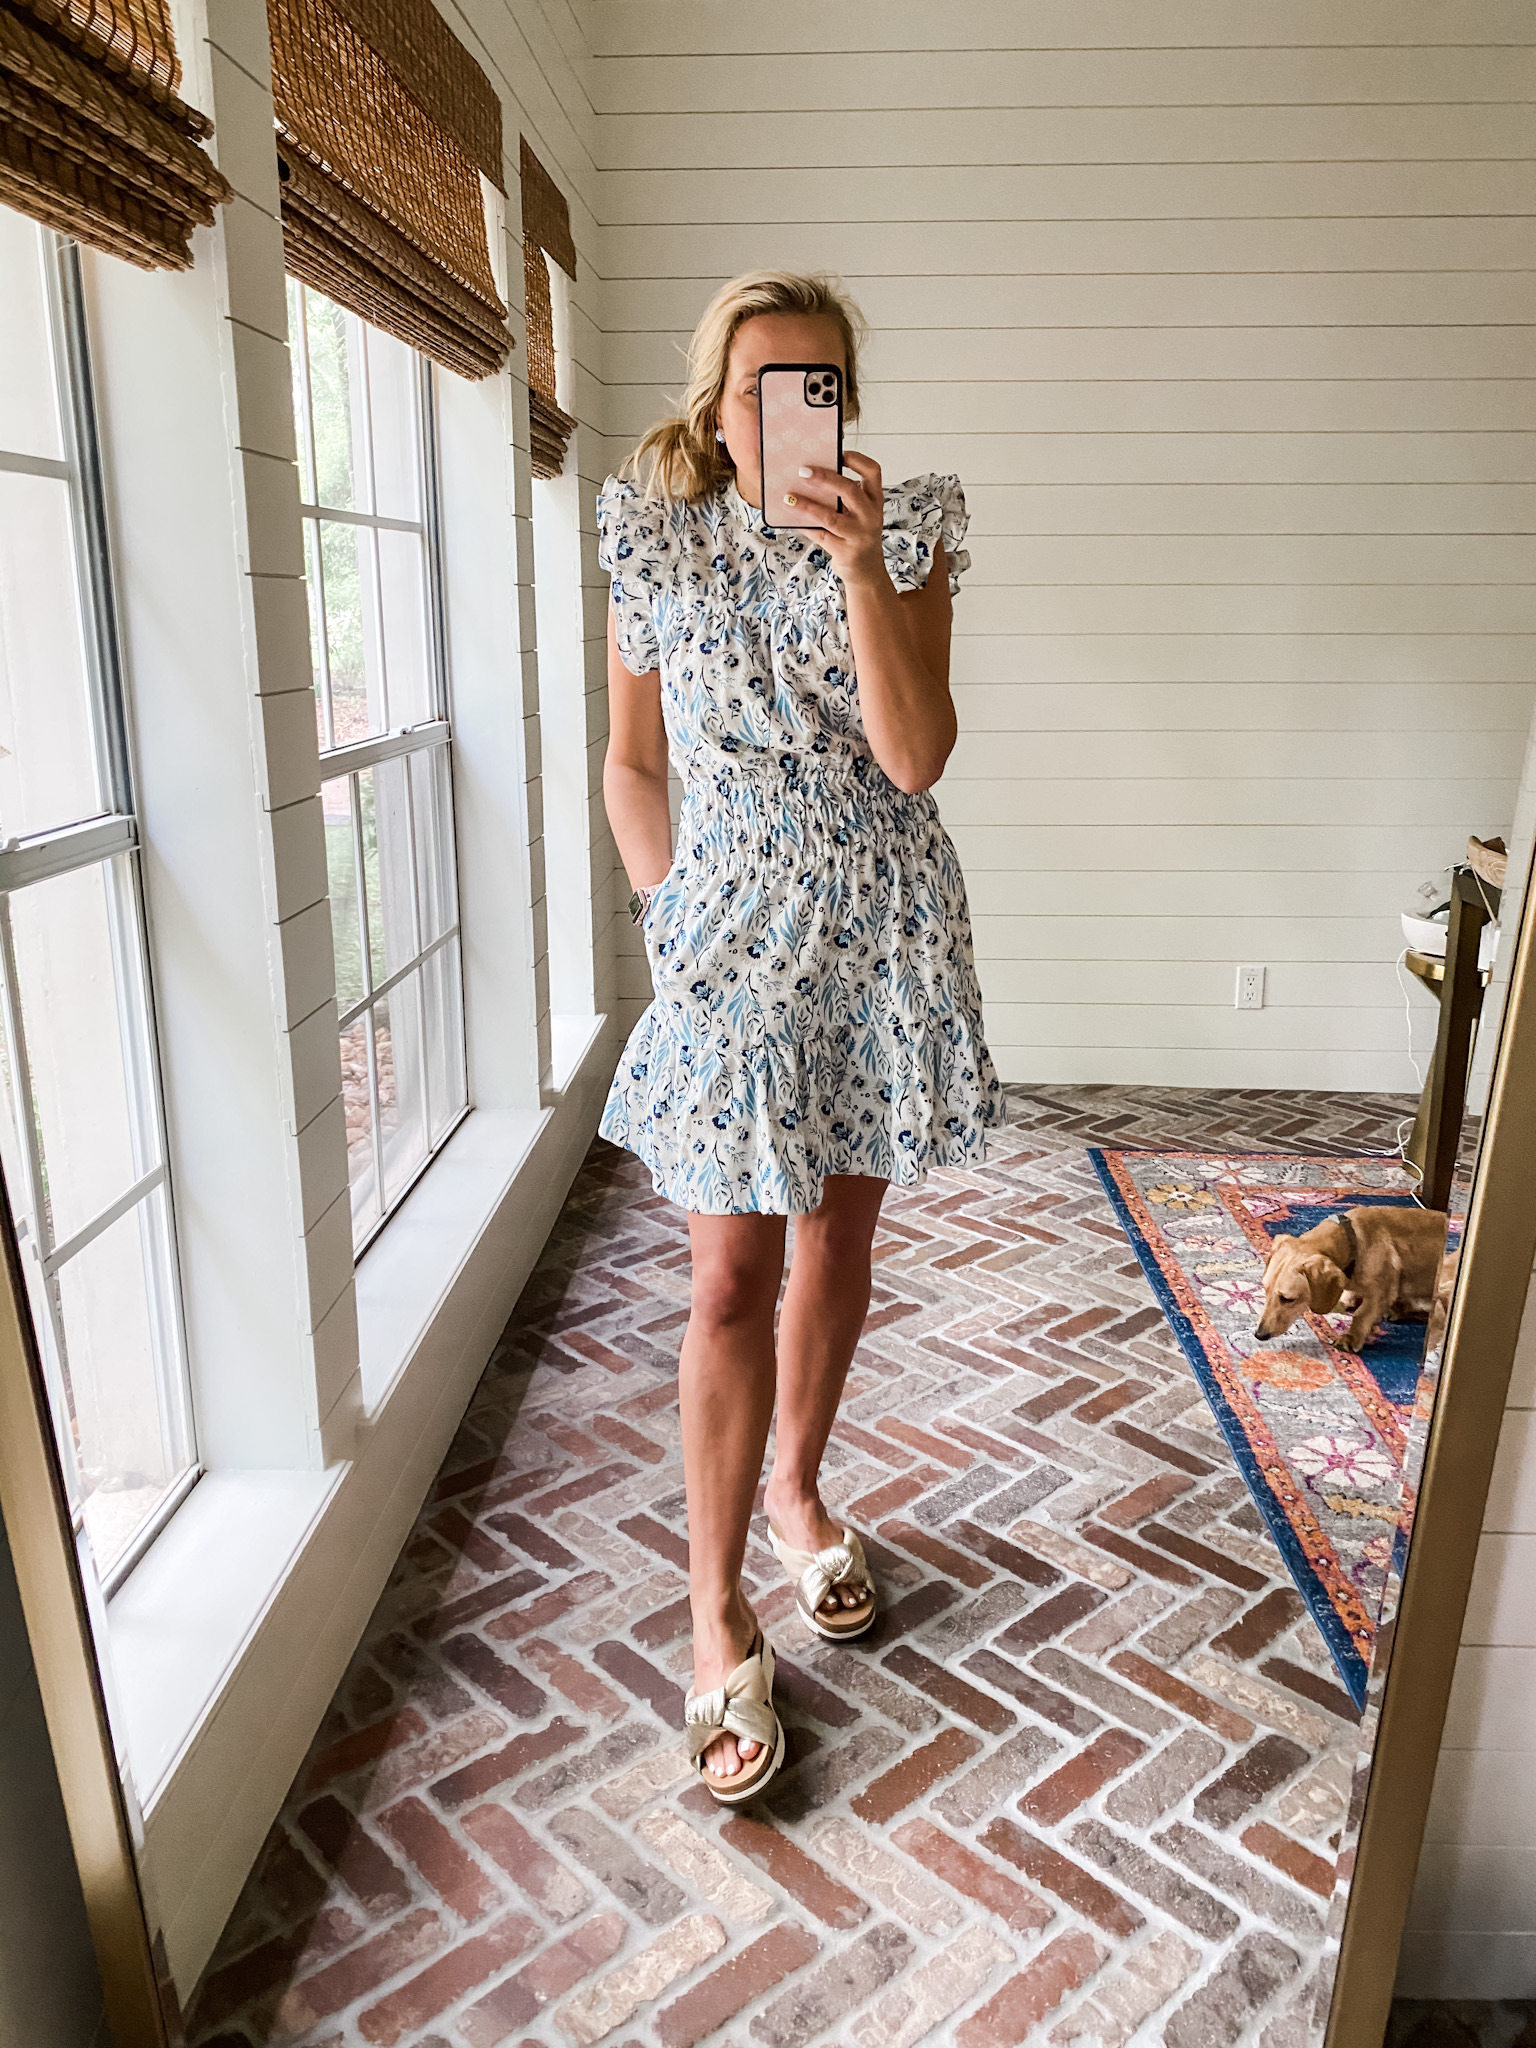 Best Sellers by popular Houston fashion blog, The House of Fancy: image of a woman wearing a blue and white floral print flutter sleeve dress and knot strap espadrille slide sandals.